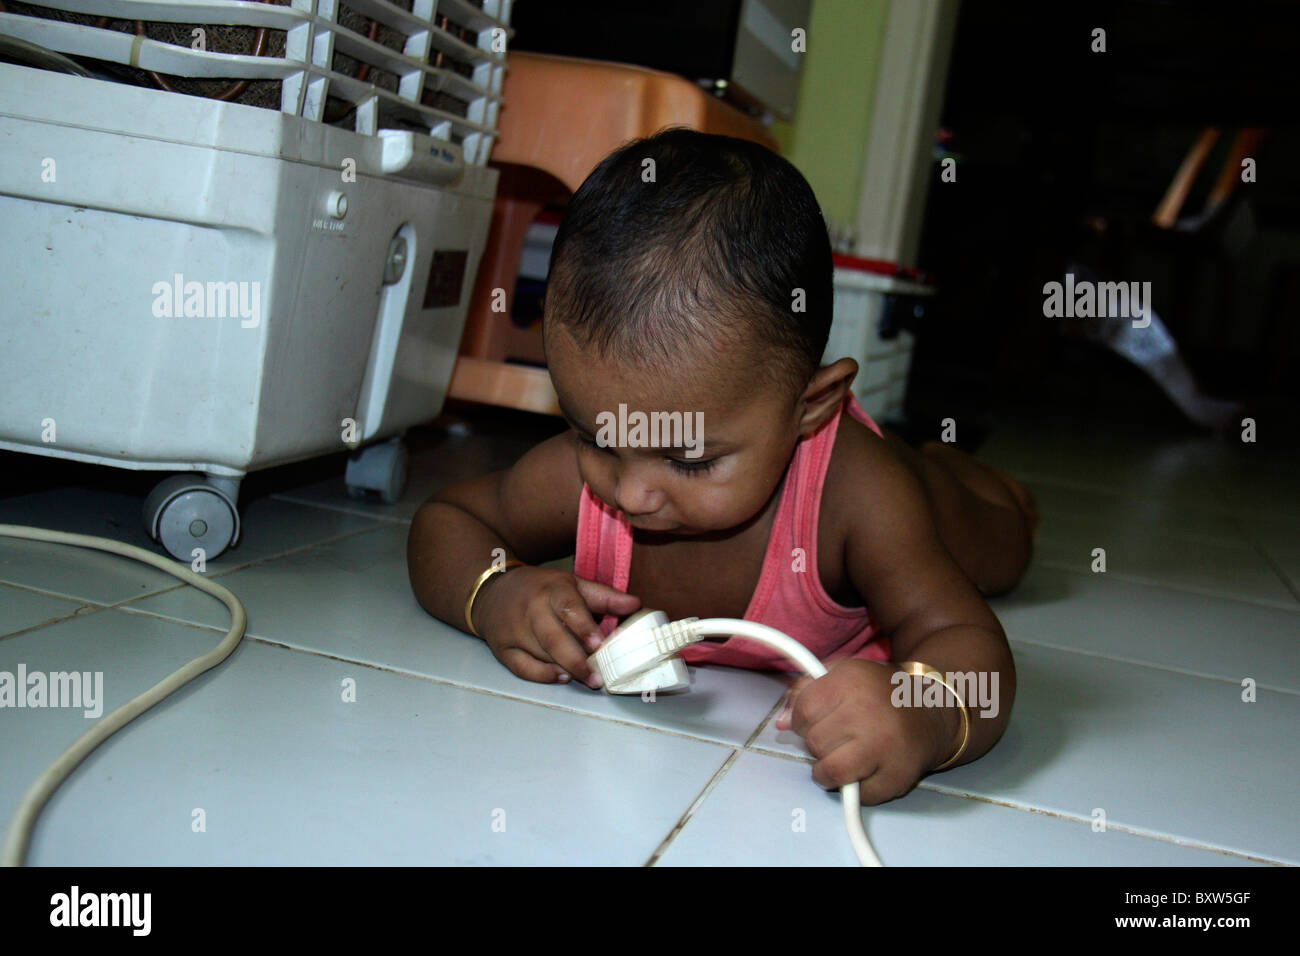 small child playing dangerously  with electrical cable carelessly,an example of parents negligence of childcare. - Stock Image